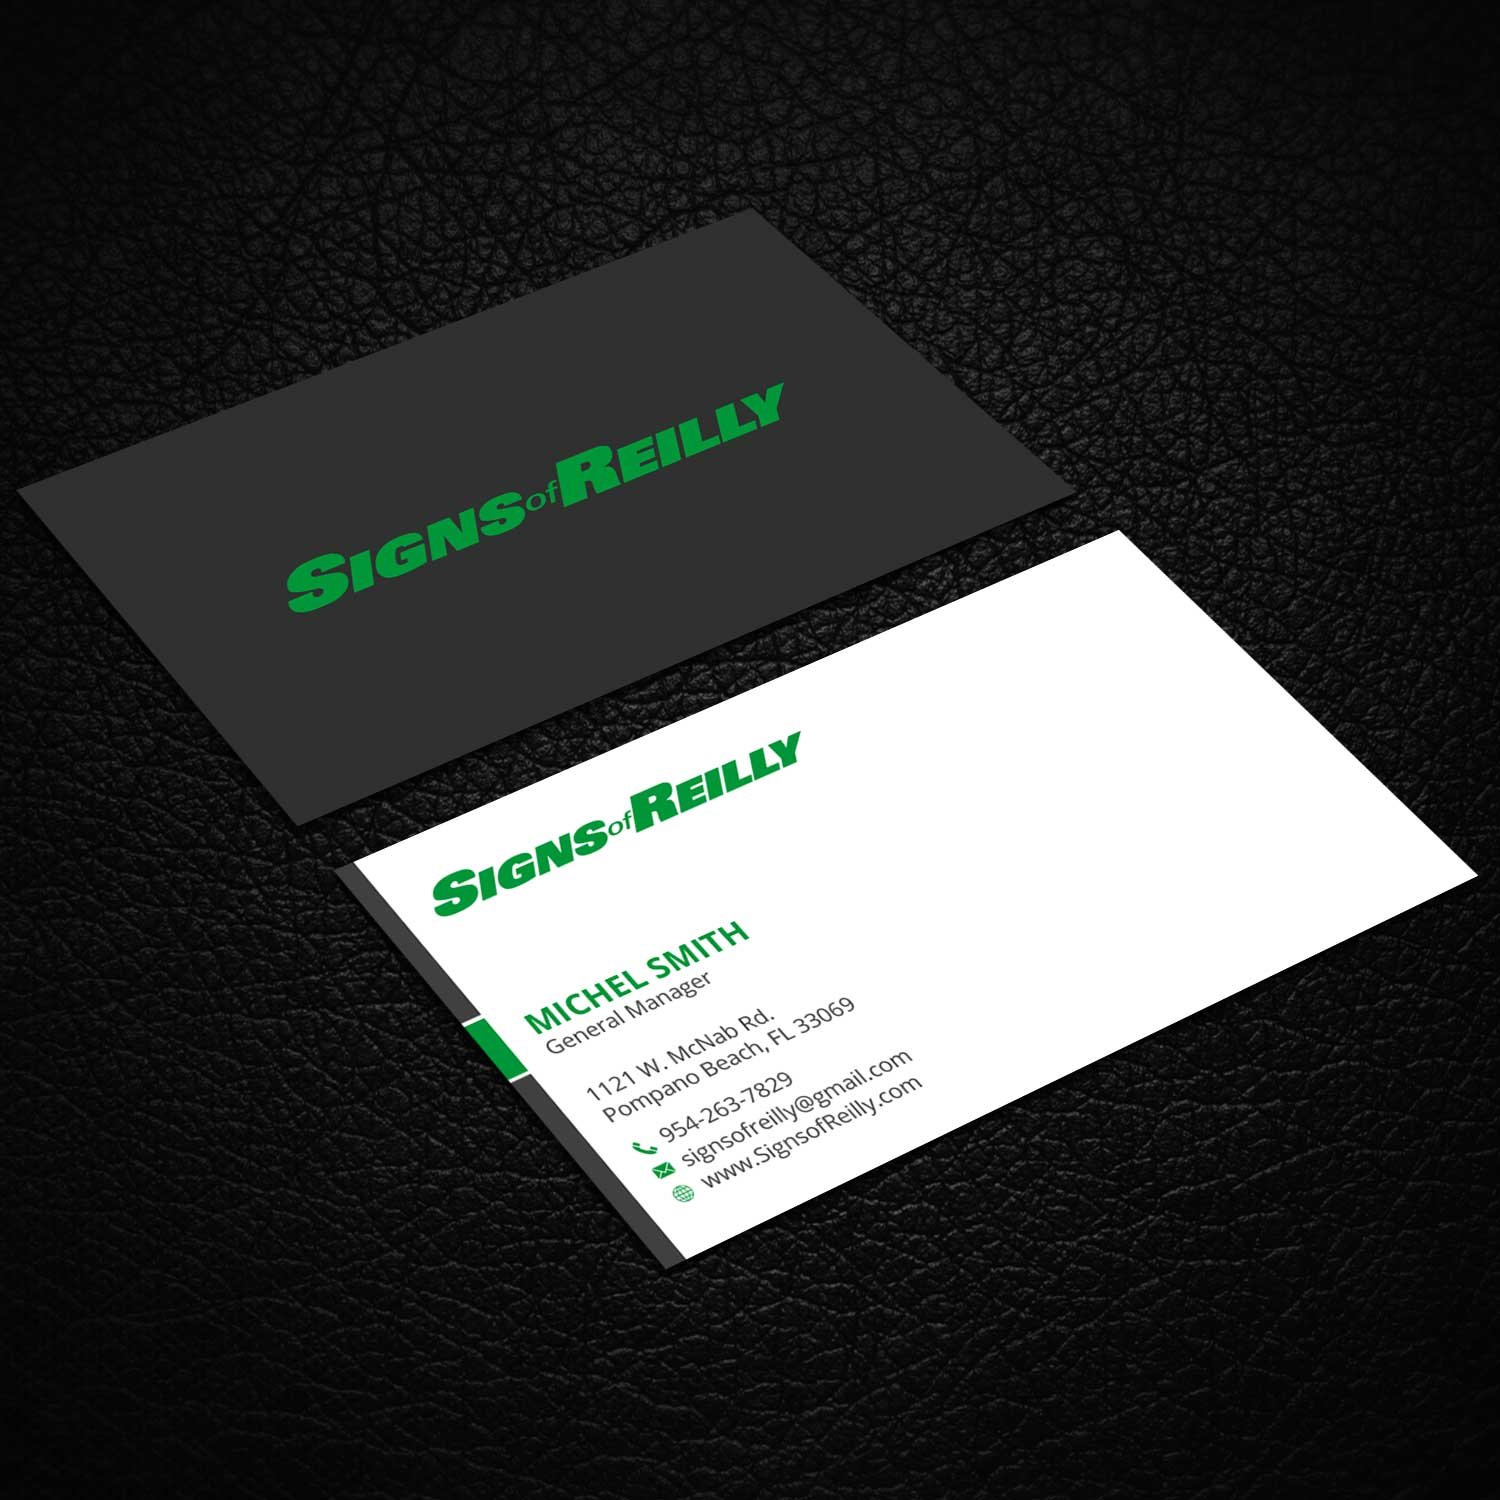 serious professional business card design for signs of reilly by